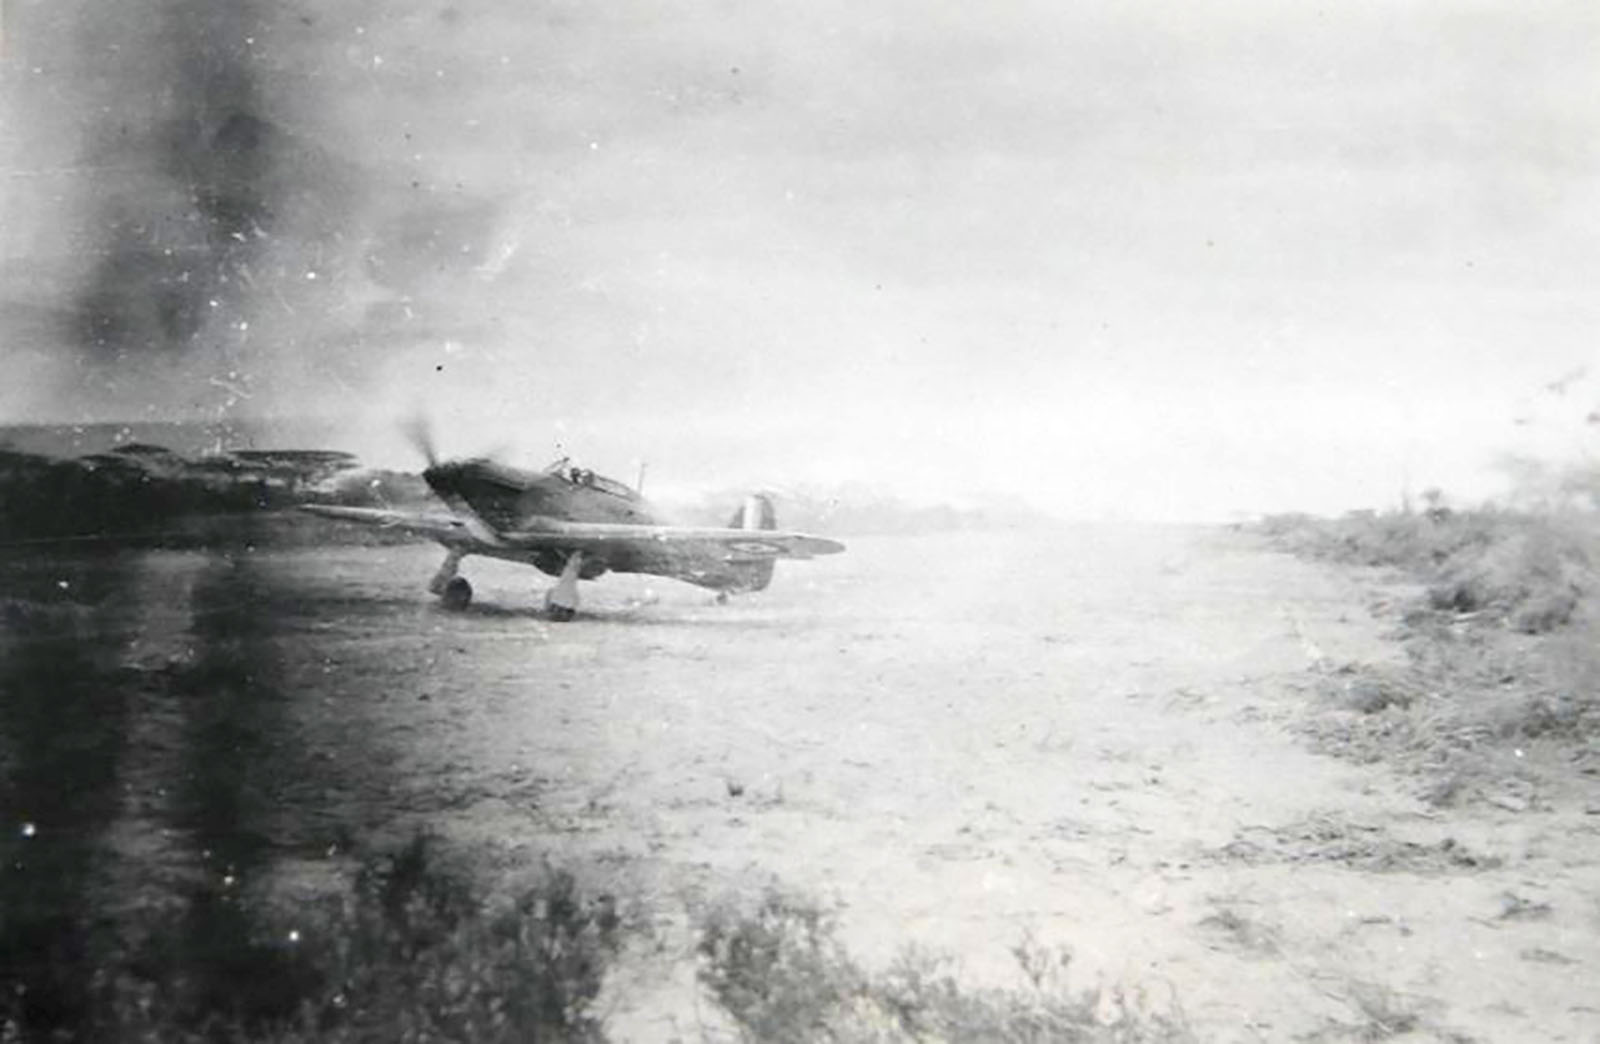 Hurricane I Trop SAAF 3Sqn unknown aircraft taxing Ethiopia East Africa March 1941 01